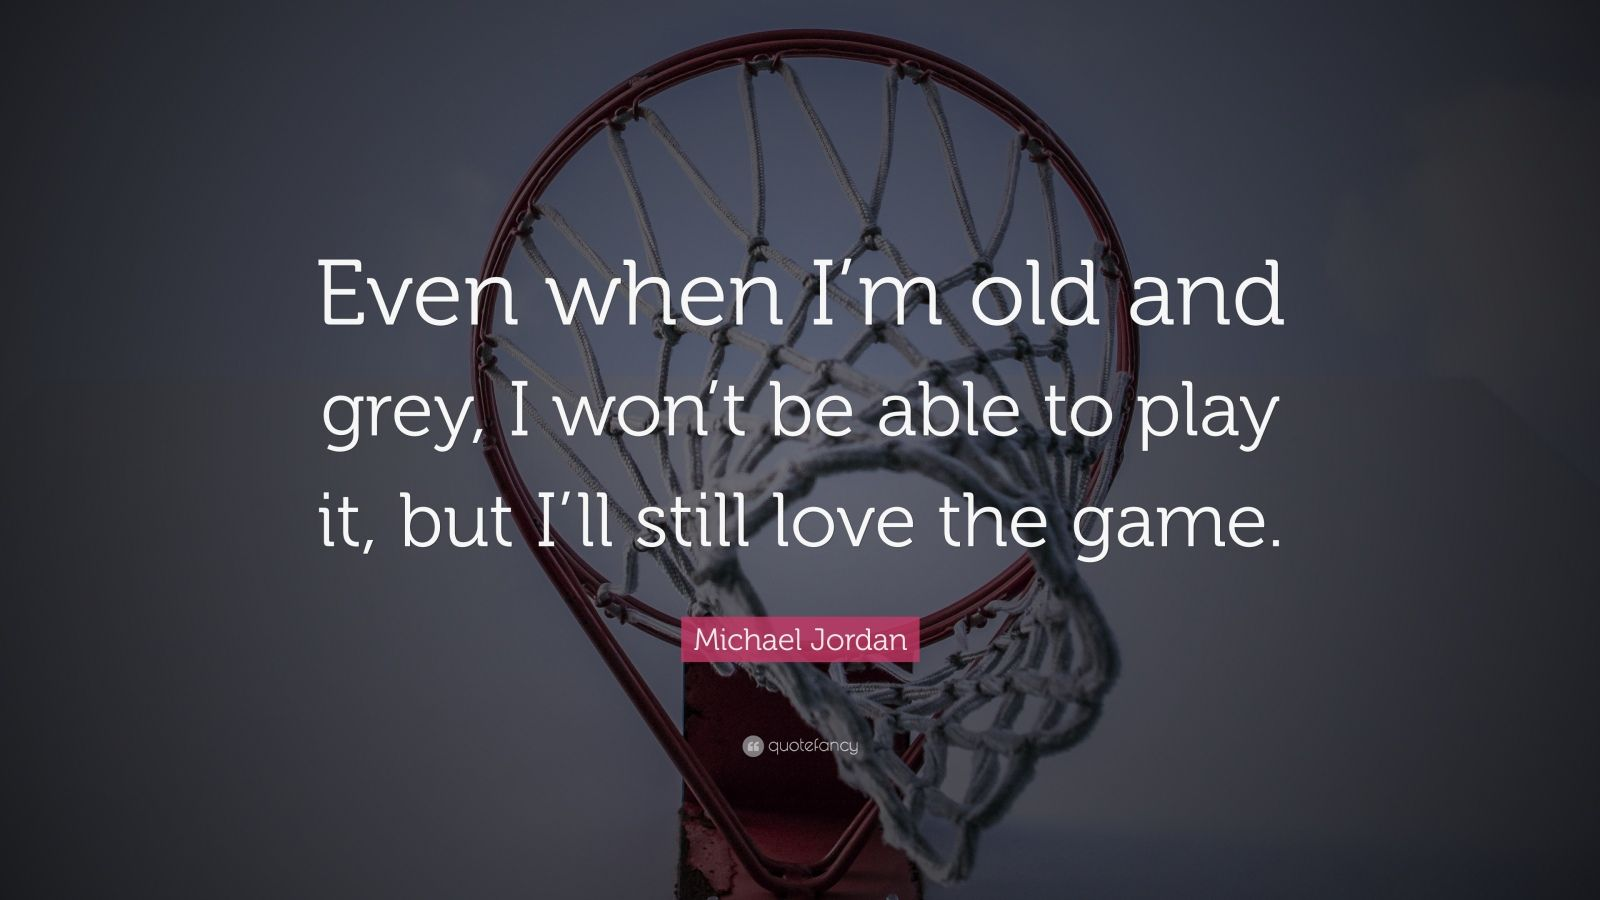 """Michael Jordan Quote: """"Even when I'm old and grey, I won't be able to play it, but I'll still love the game."""""""